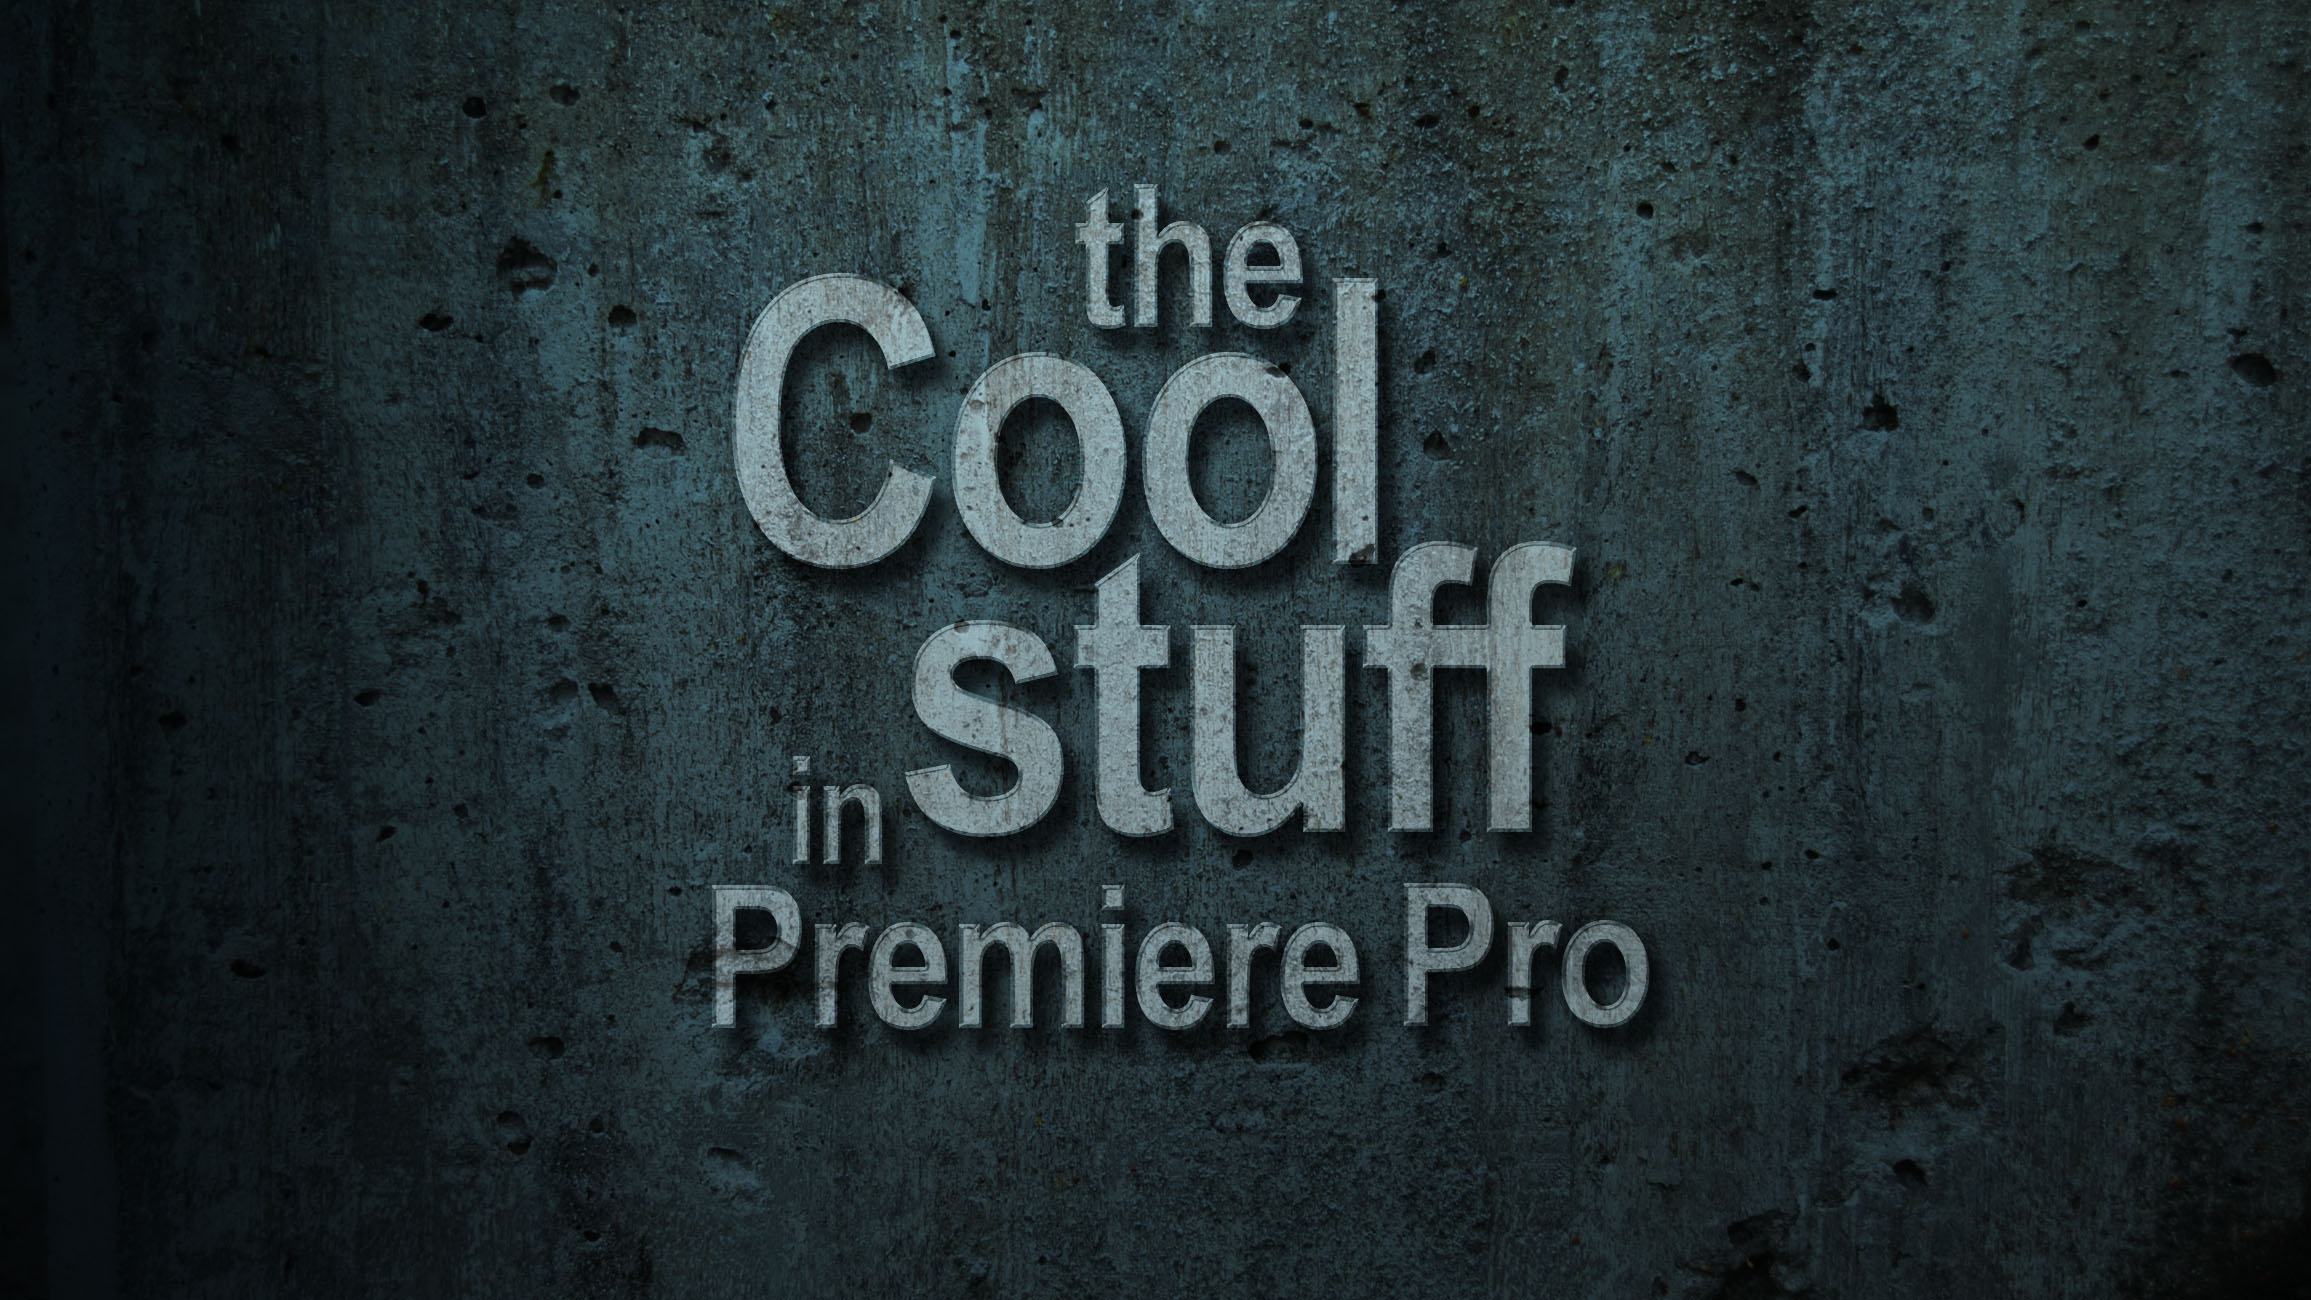 The cool stuff in premiere pro premierepro the cool stuff in premiere pro ccuart Image collections